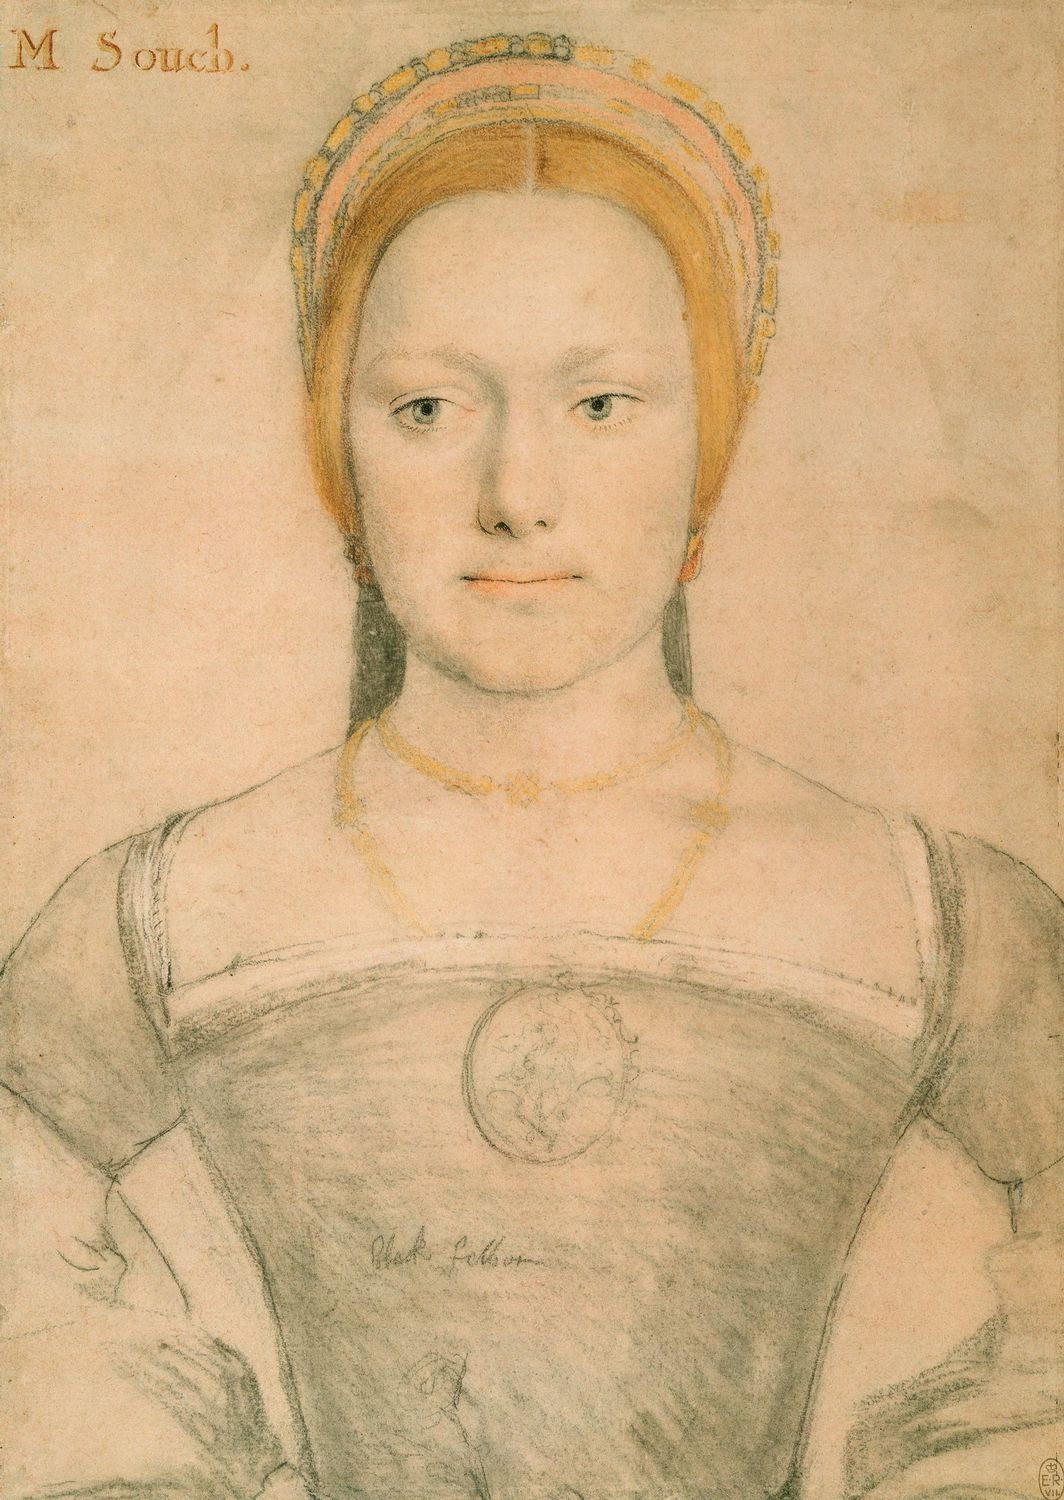 Portrait of M. Zouch. c.1538